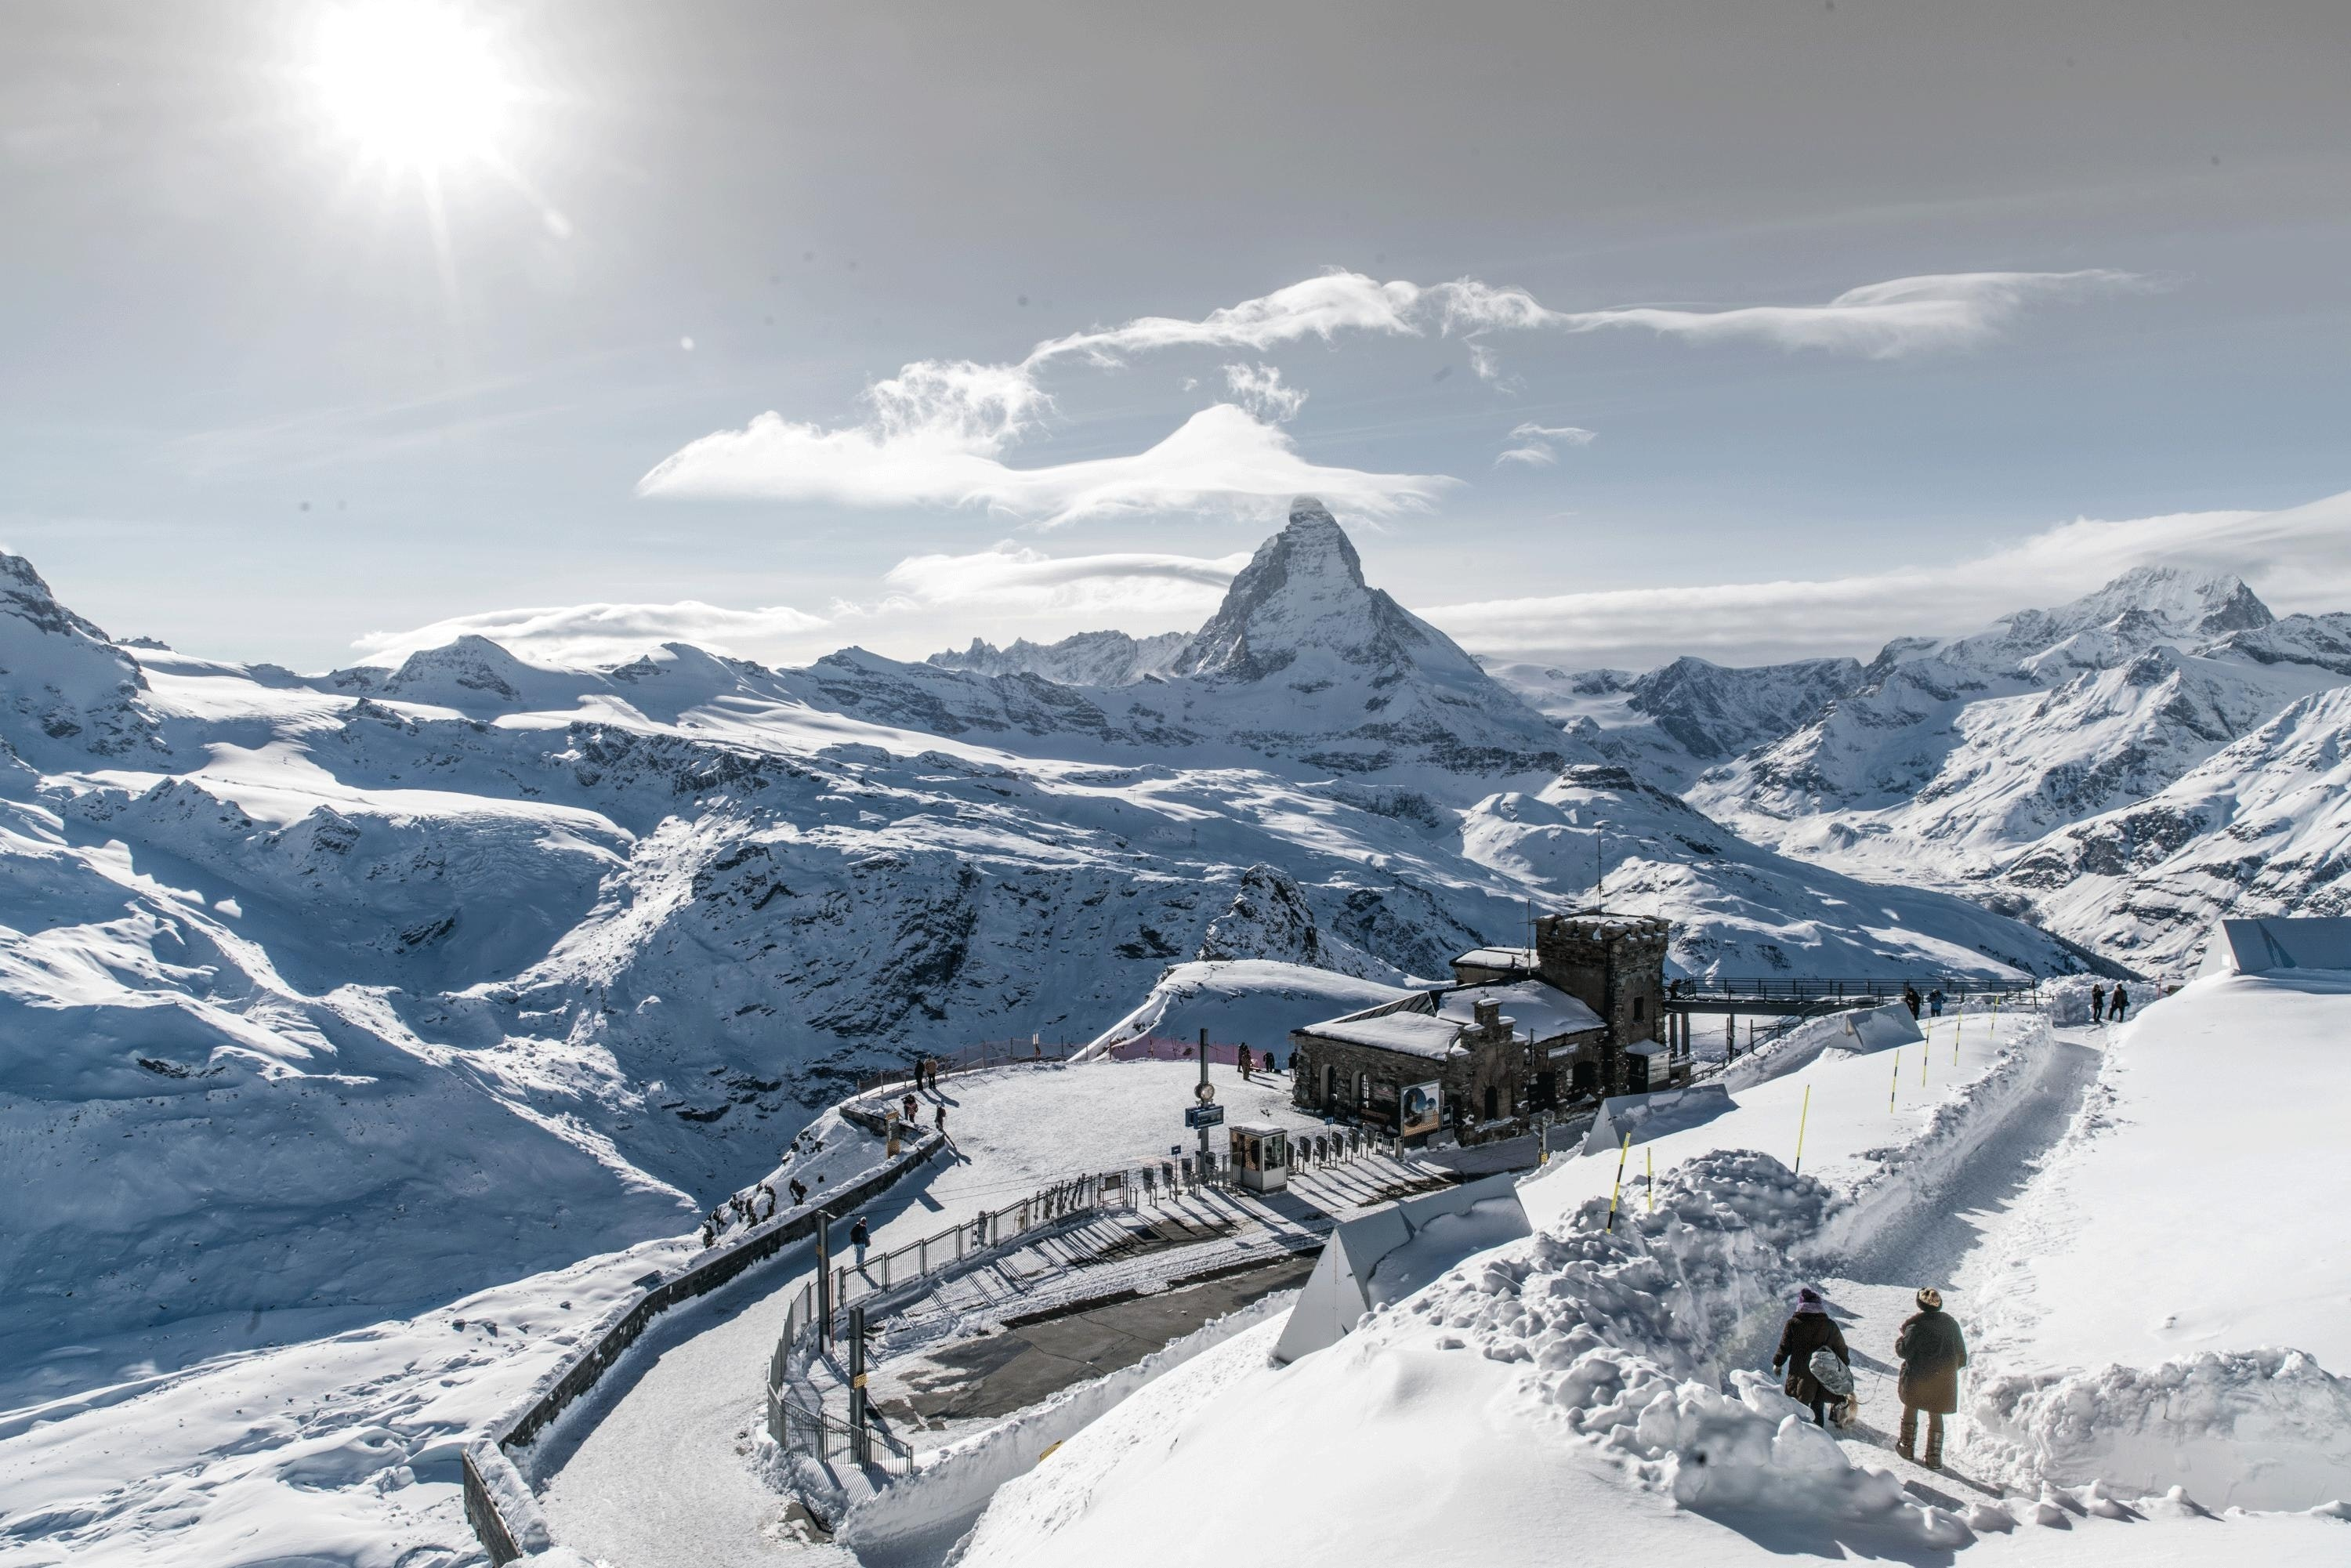 Station Gornergrat © David Bumann